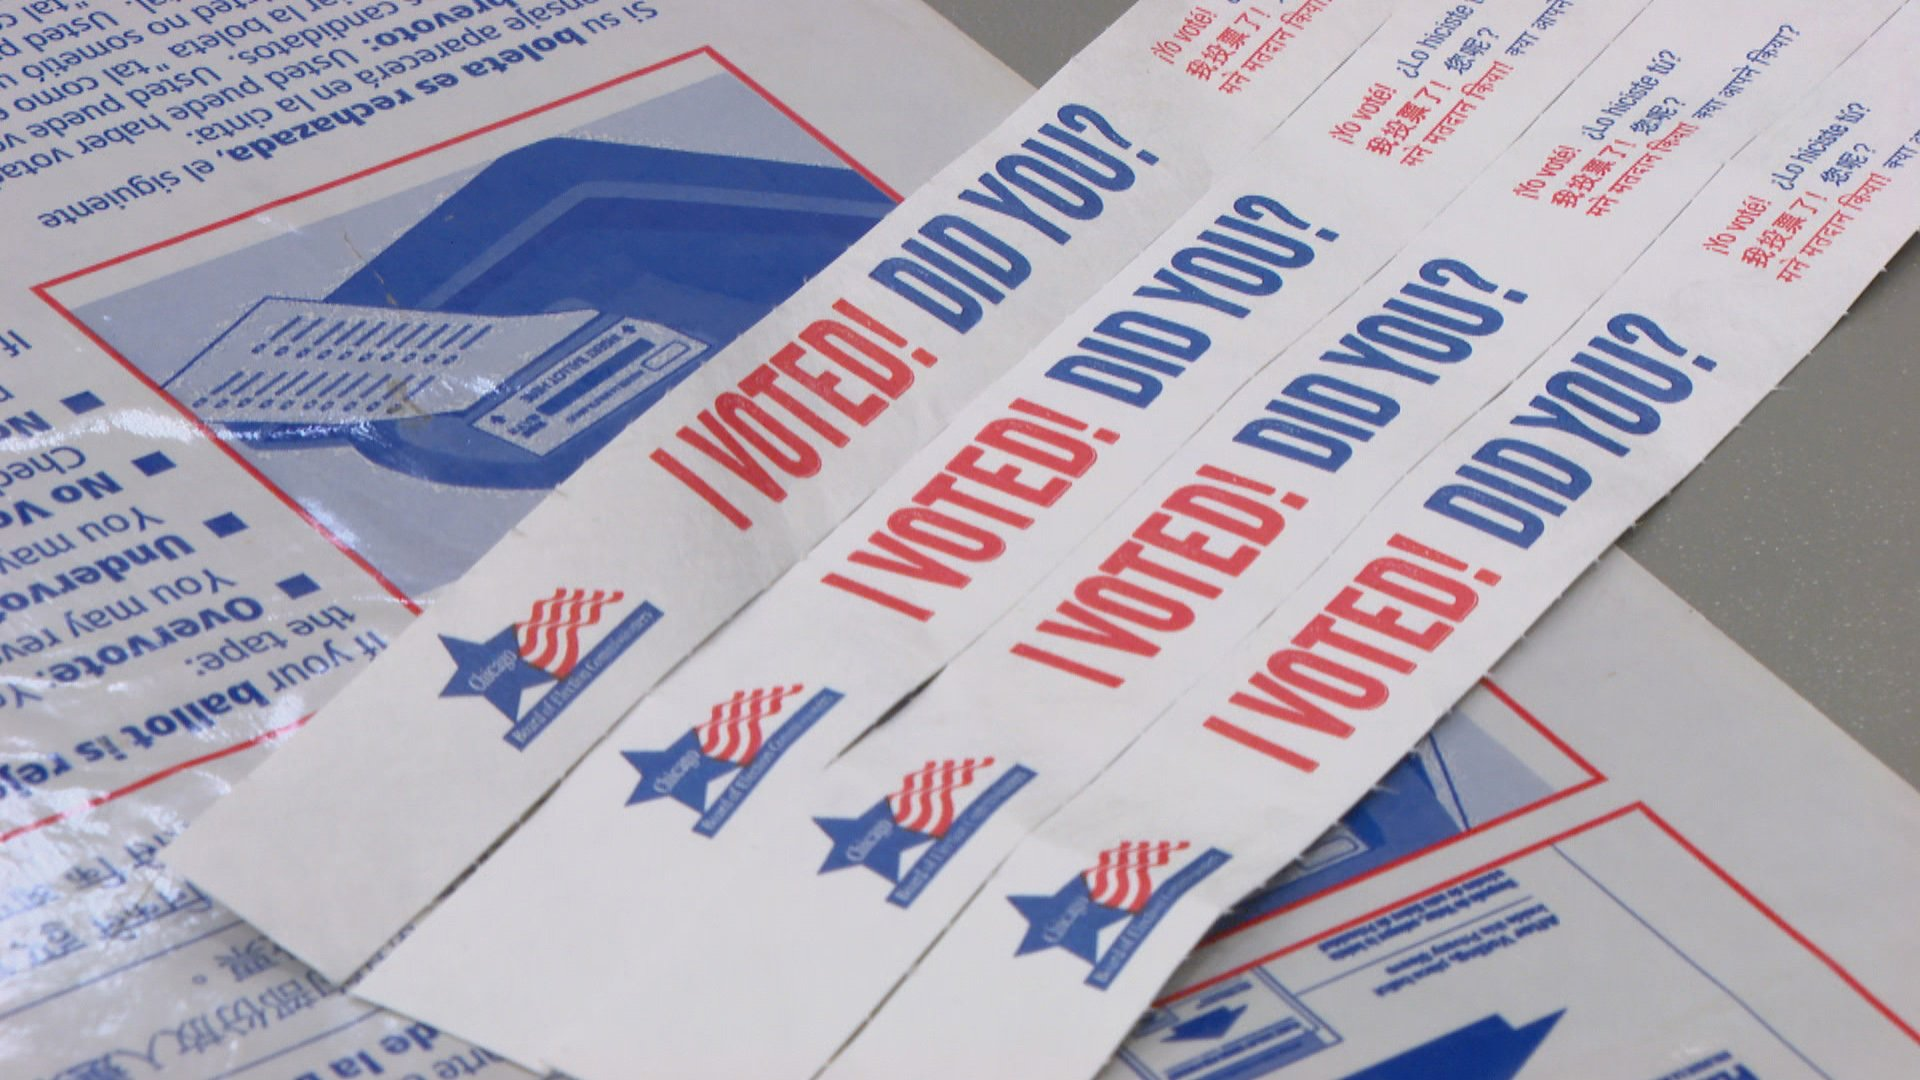 Chicago\'s Runoff Election: Early Voting Locations, Dates | Chicago ...